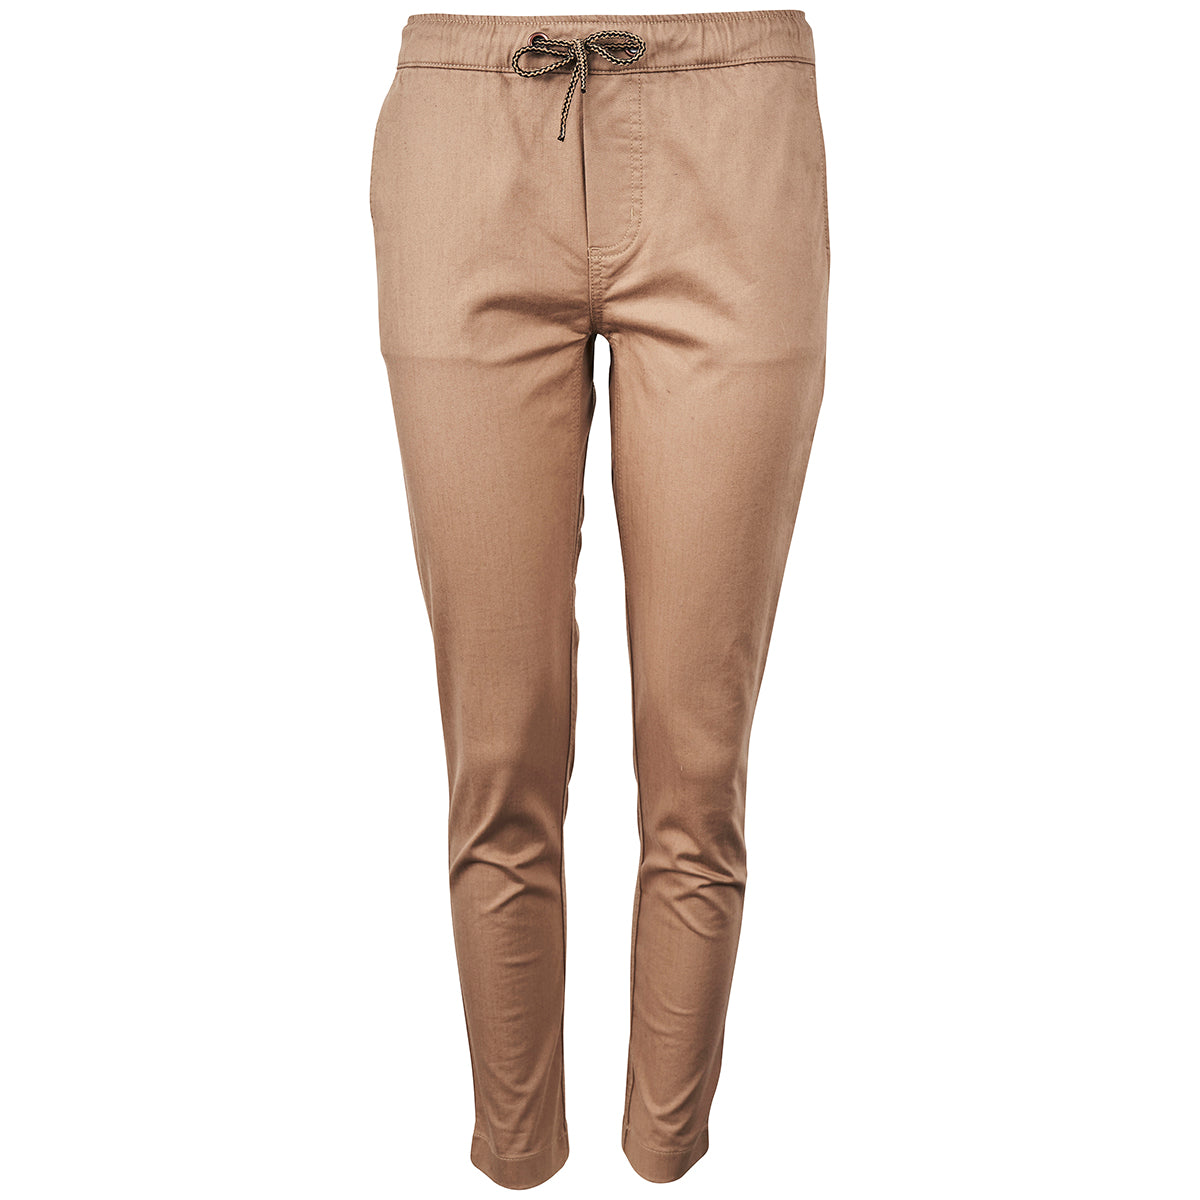 United By Blue Women's Offtrail Pant